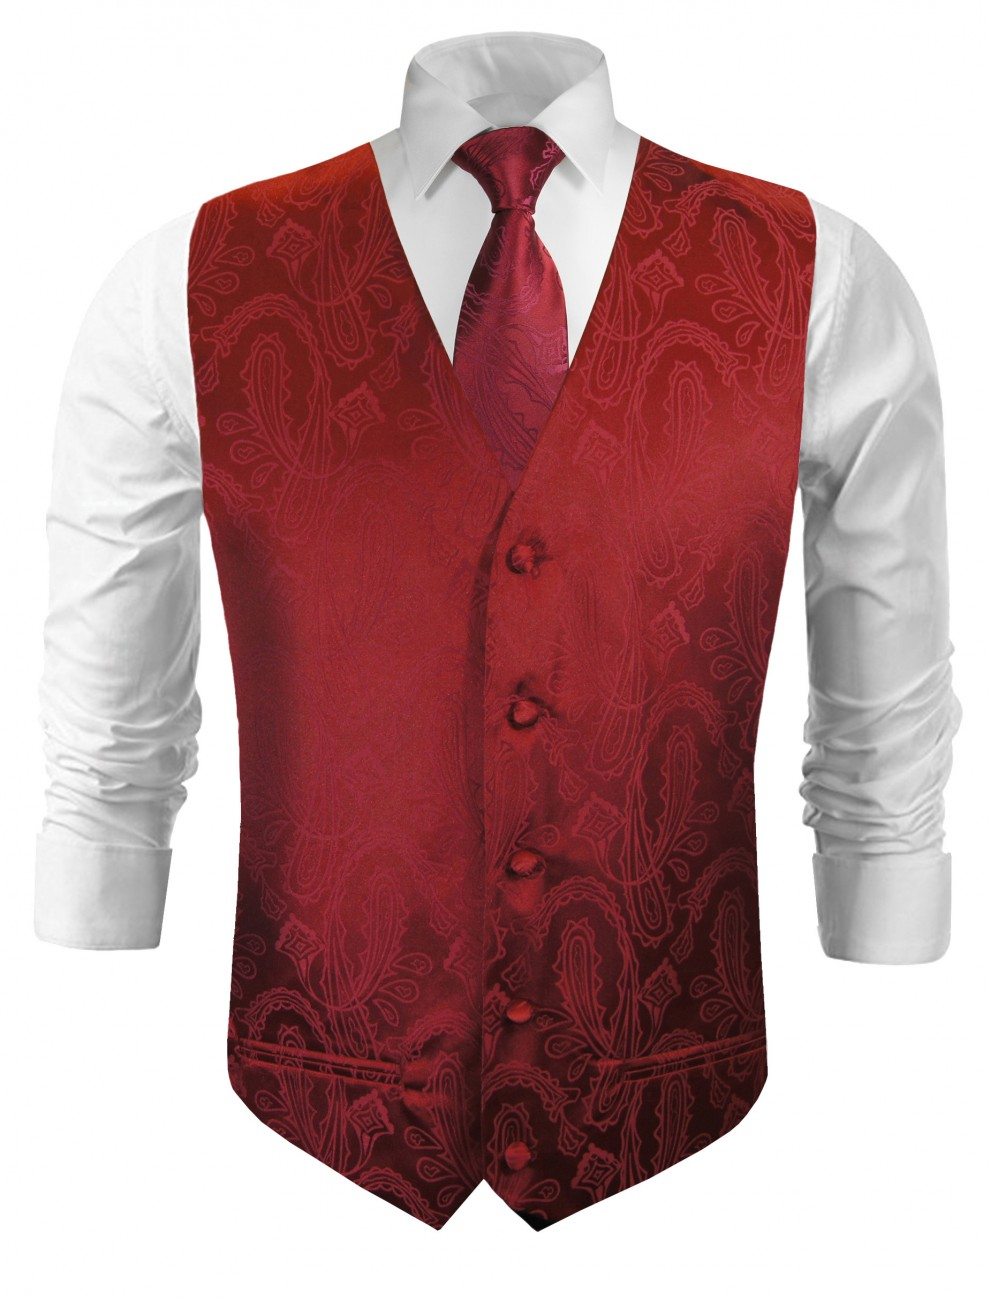 Wedding vest with necktie maroon red paisley